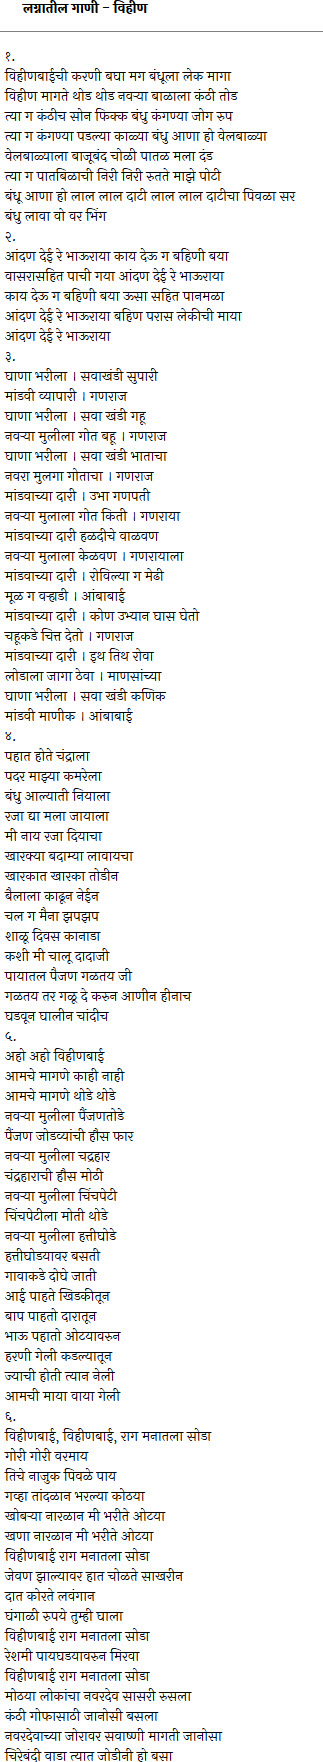 Lagnatil gani - Marriage songs in Marathi